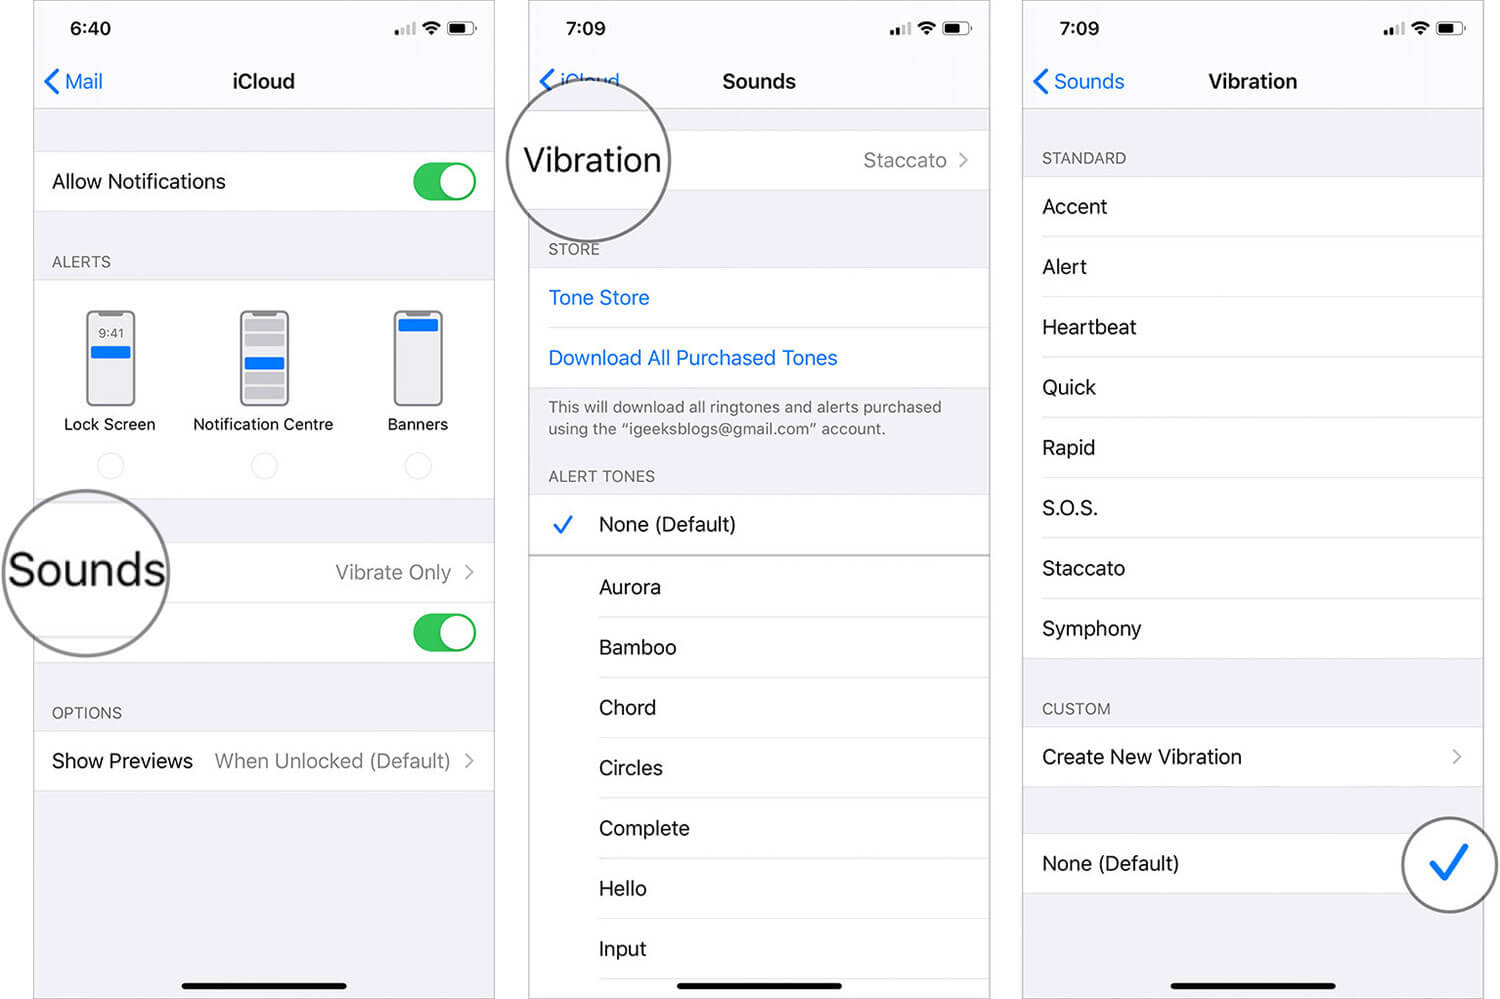 In iCloud tap on Sounds then tap on virabtion and select none on iPhone and iPad